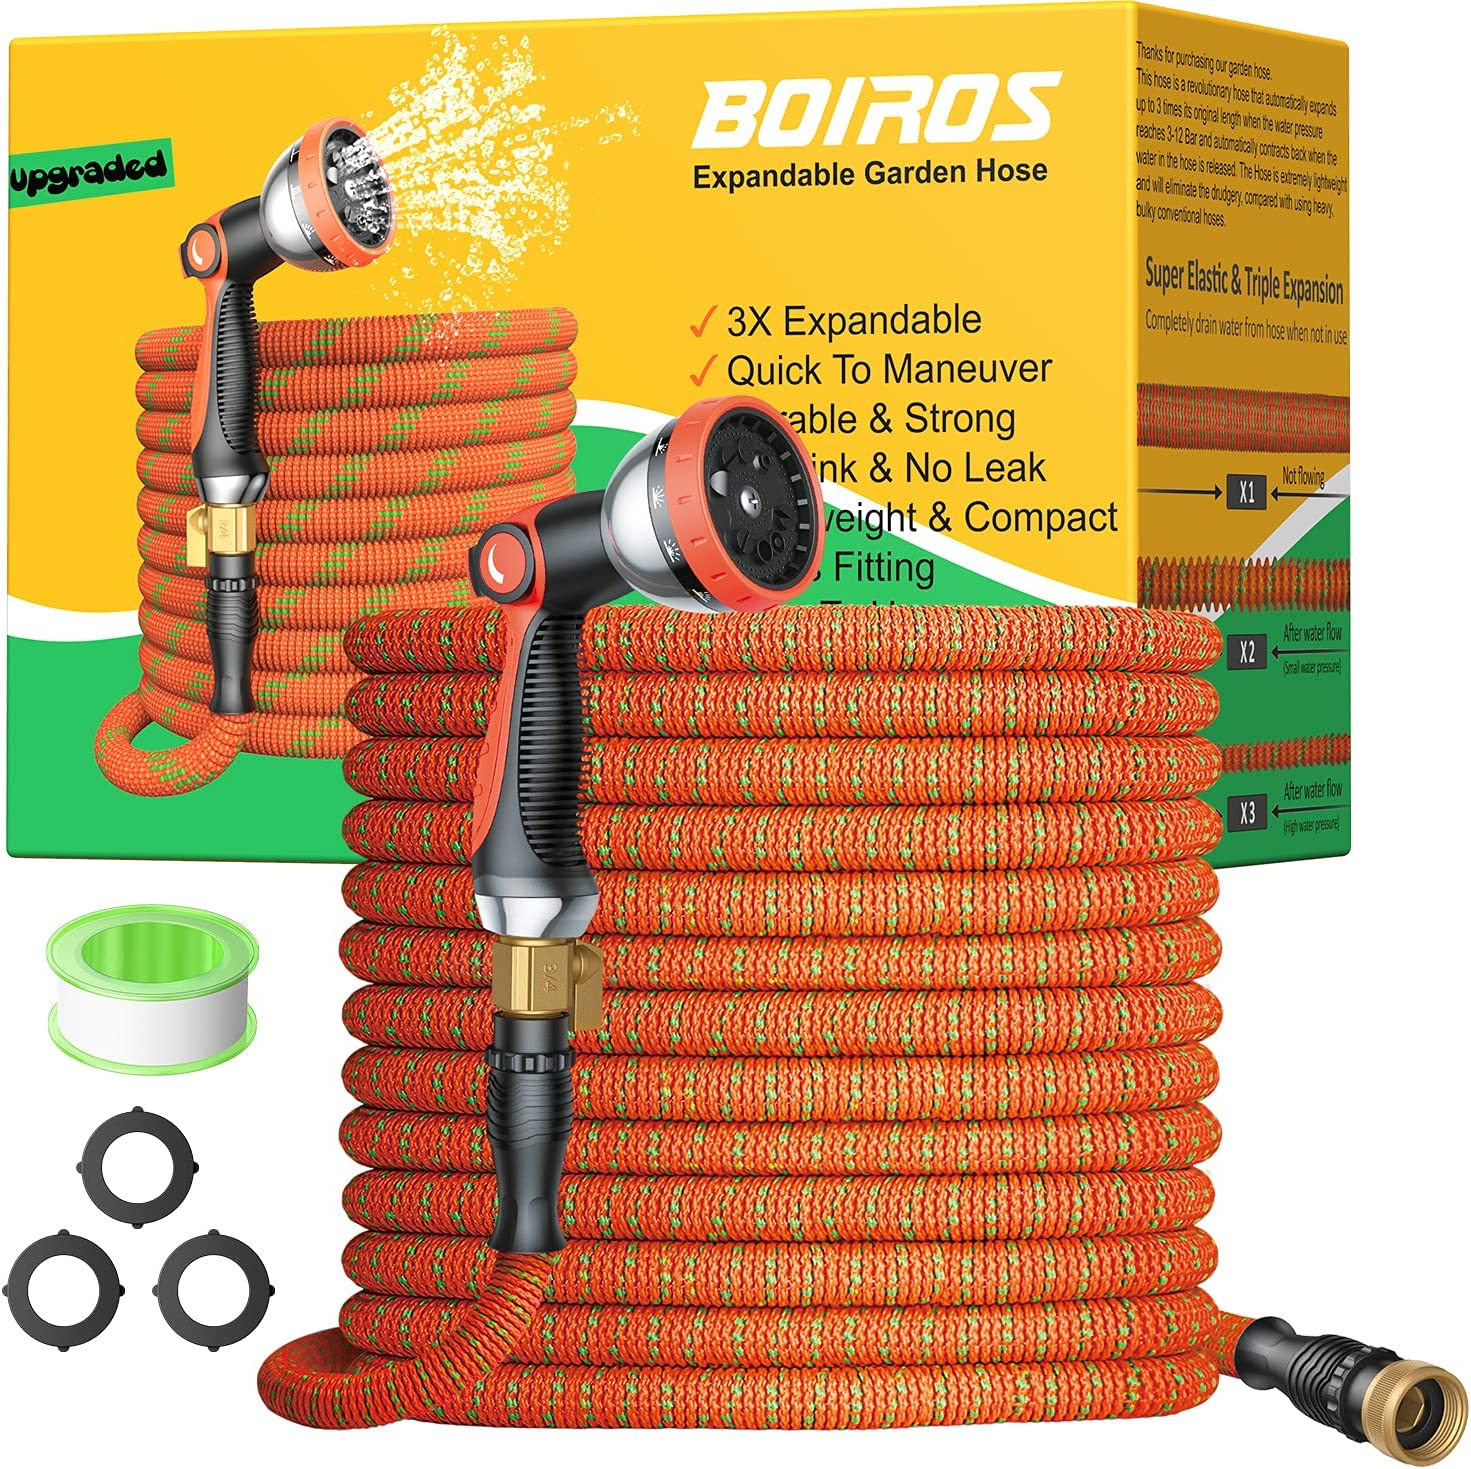 BOIROS Garden Hose 100ft, Expandable and Flexible Water Hose with 10 Function High-Pressure Spray Nozzle, Premium Solid Brass Connector Leakproof Latex Core Fittings No Kink Lightweight Expanding Hose